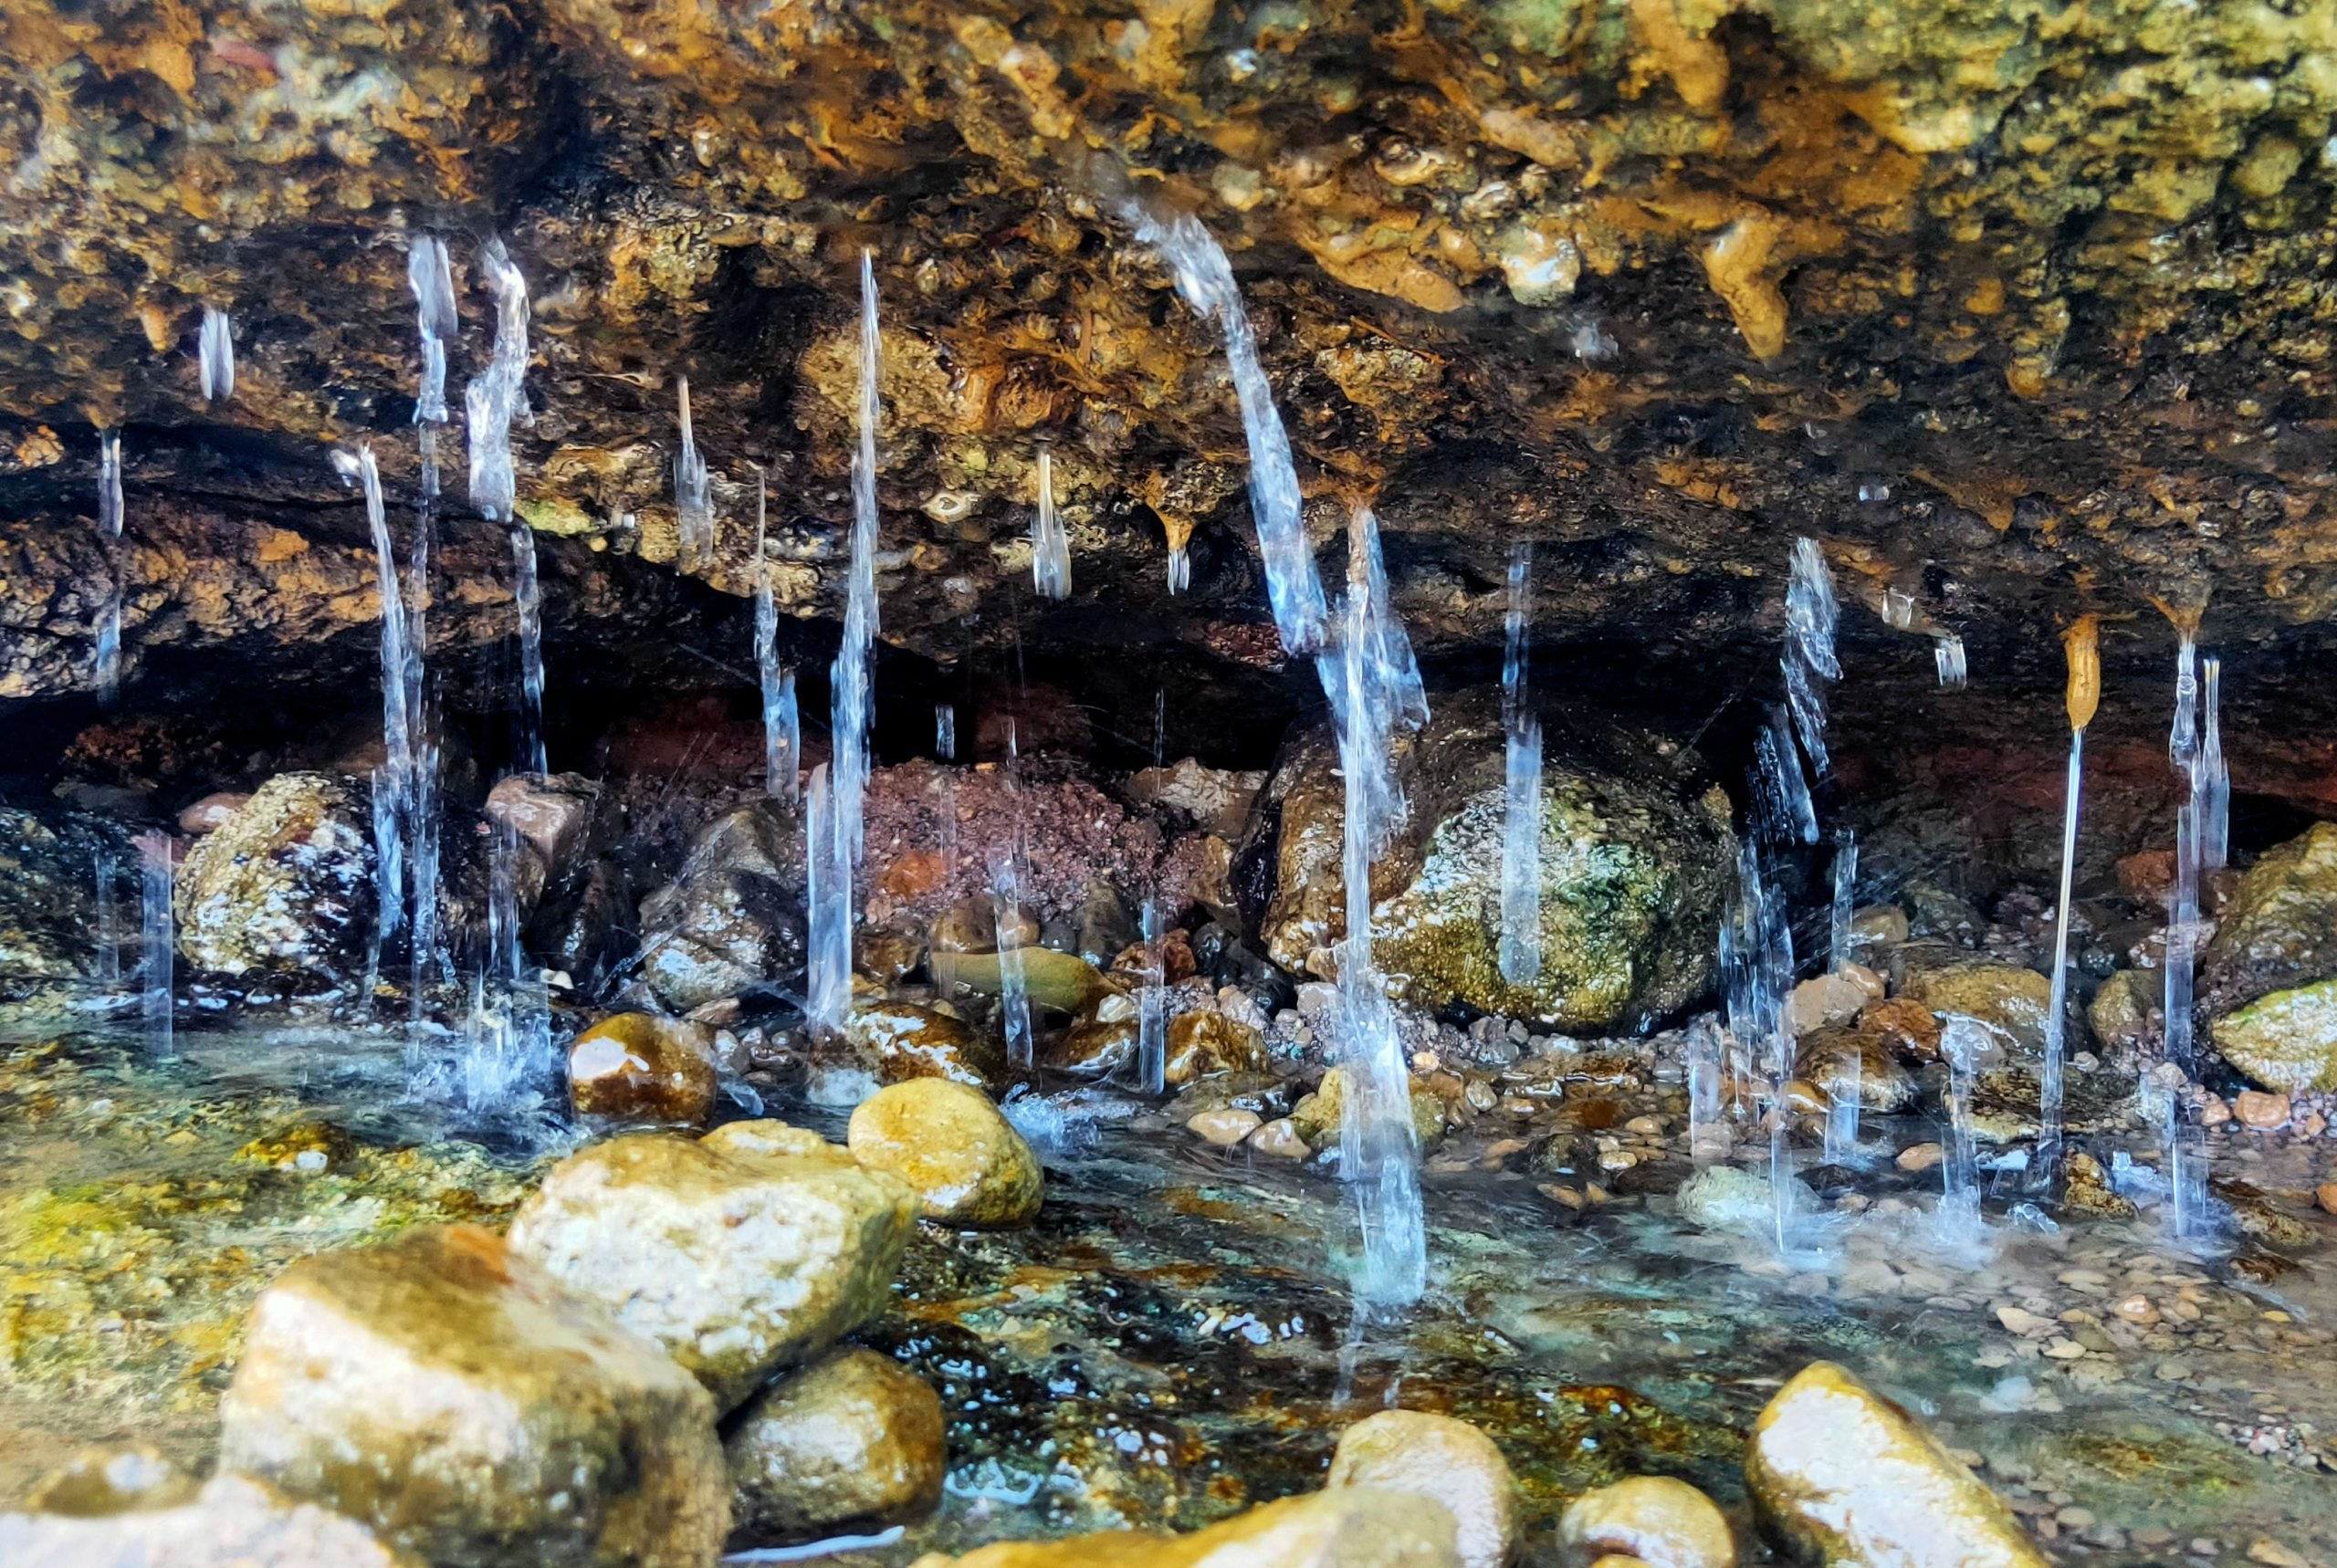 Water droping from a rocky cave